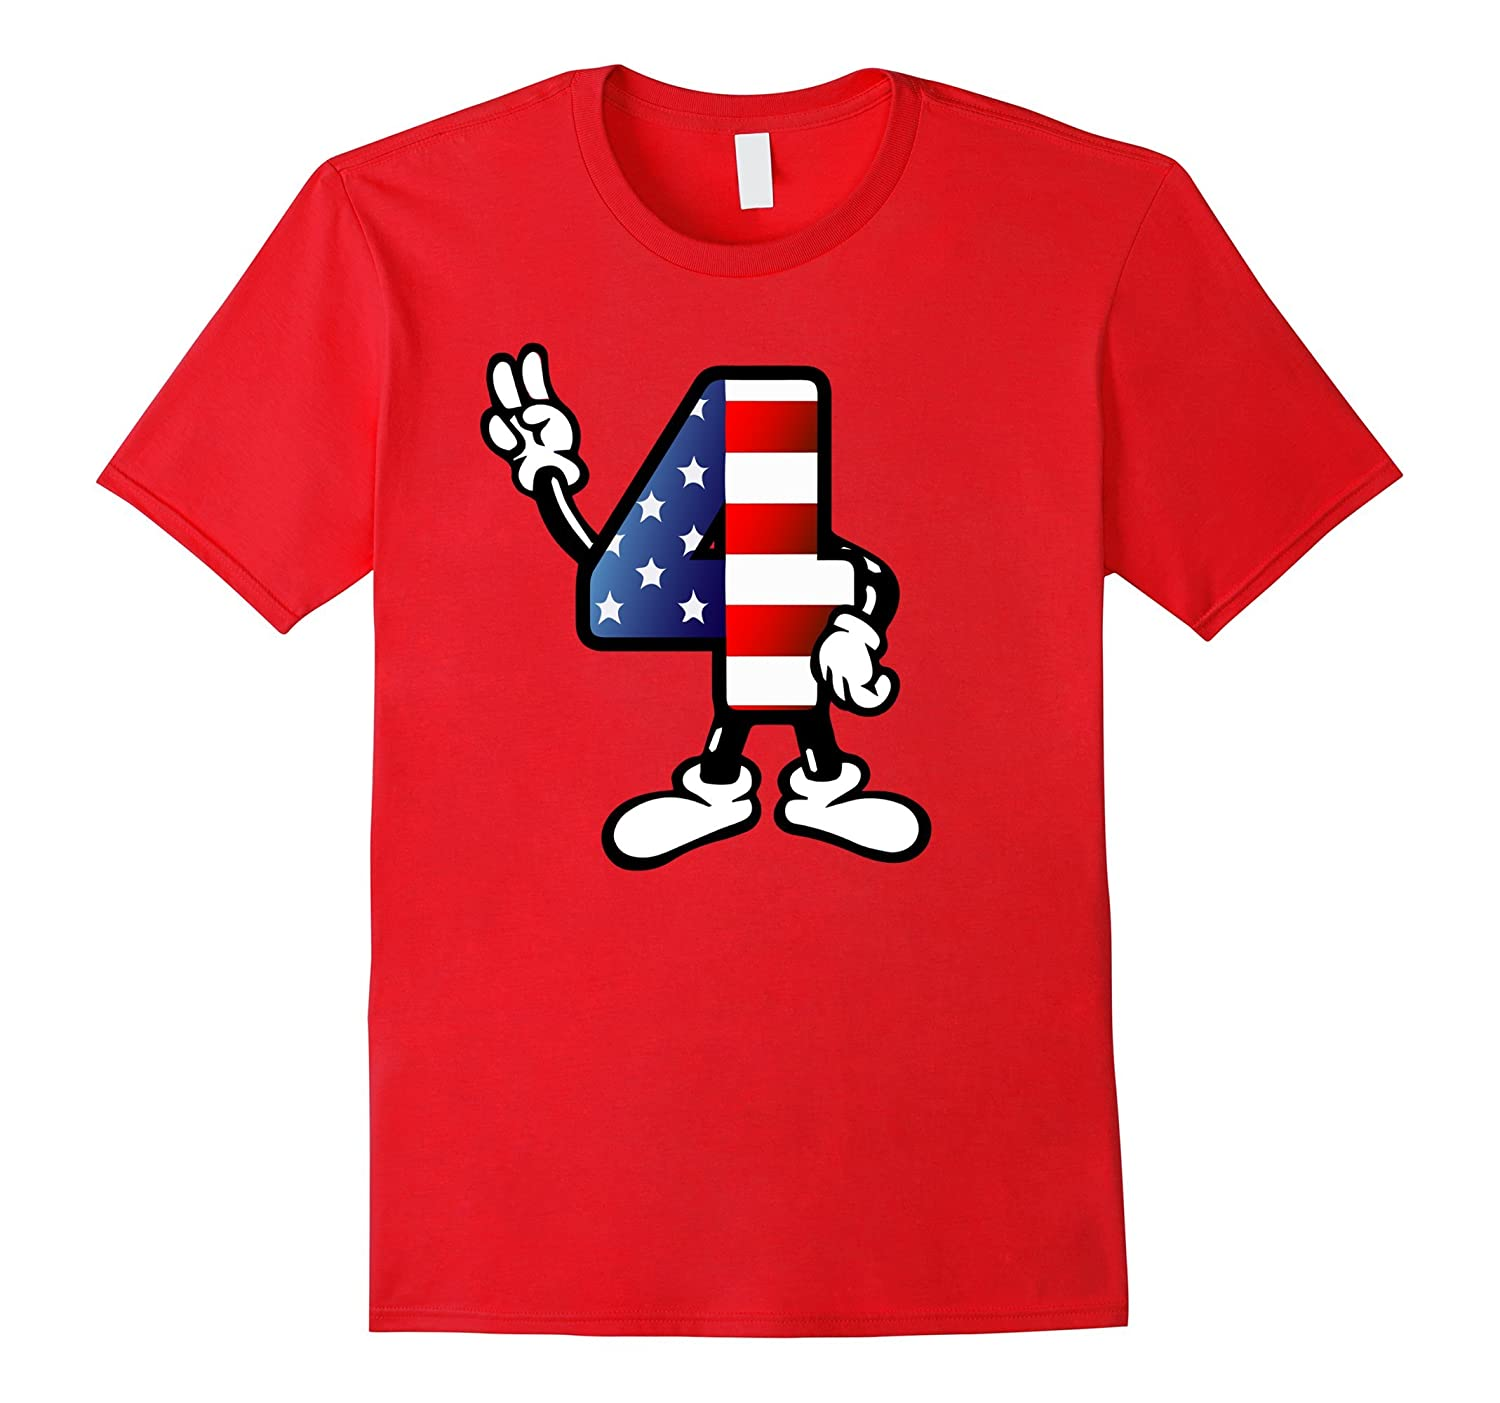 4th of July Shirt with American Flag and Peace Sign-TH